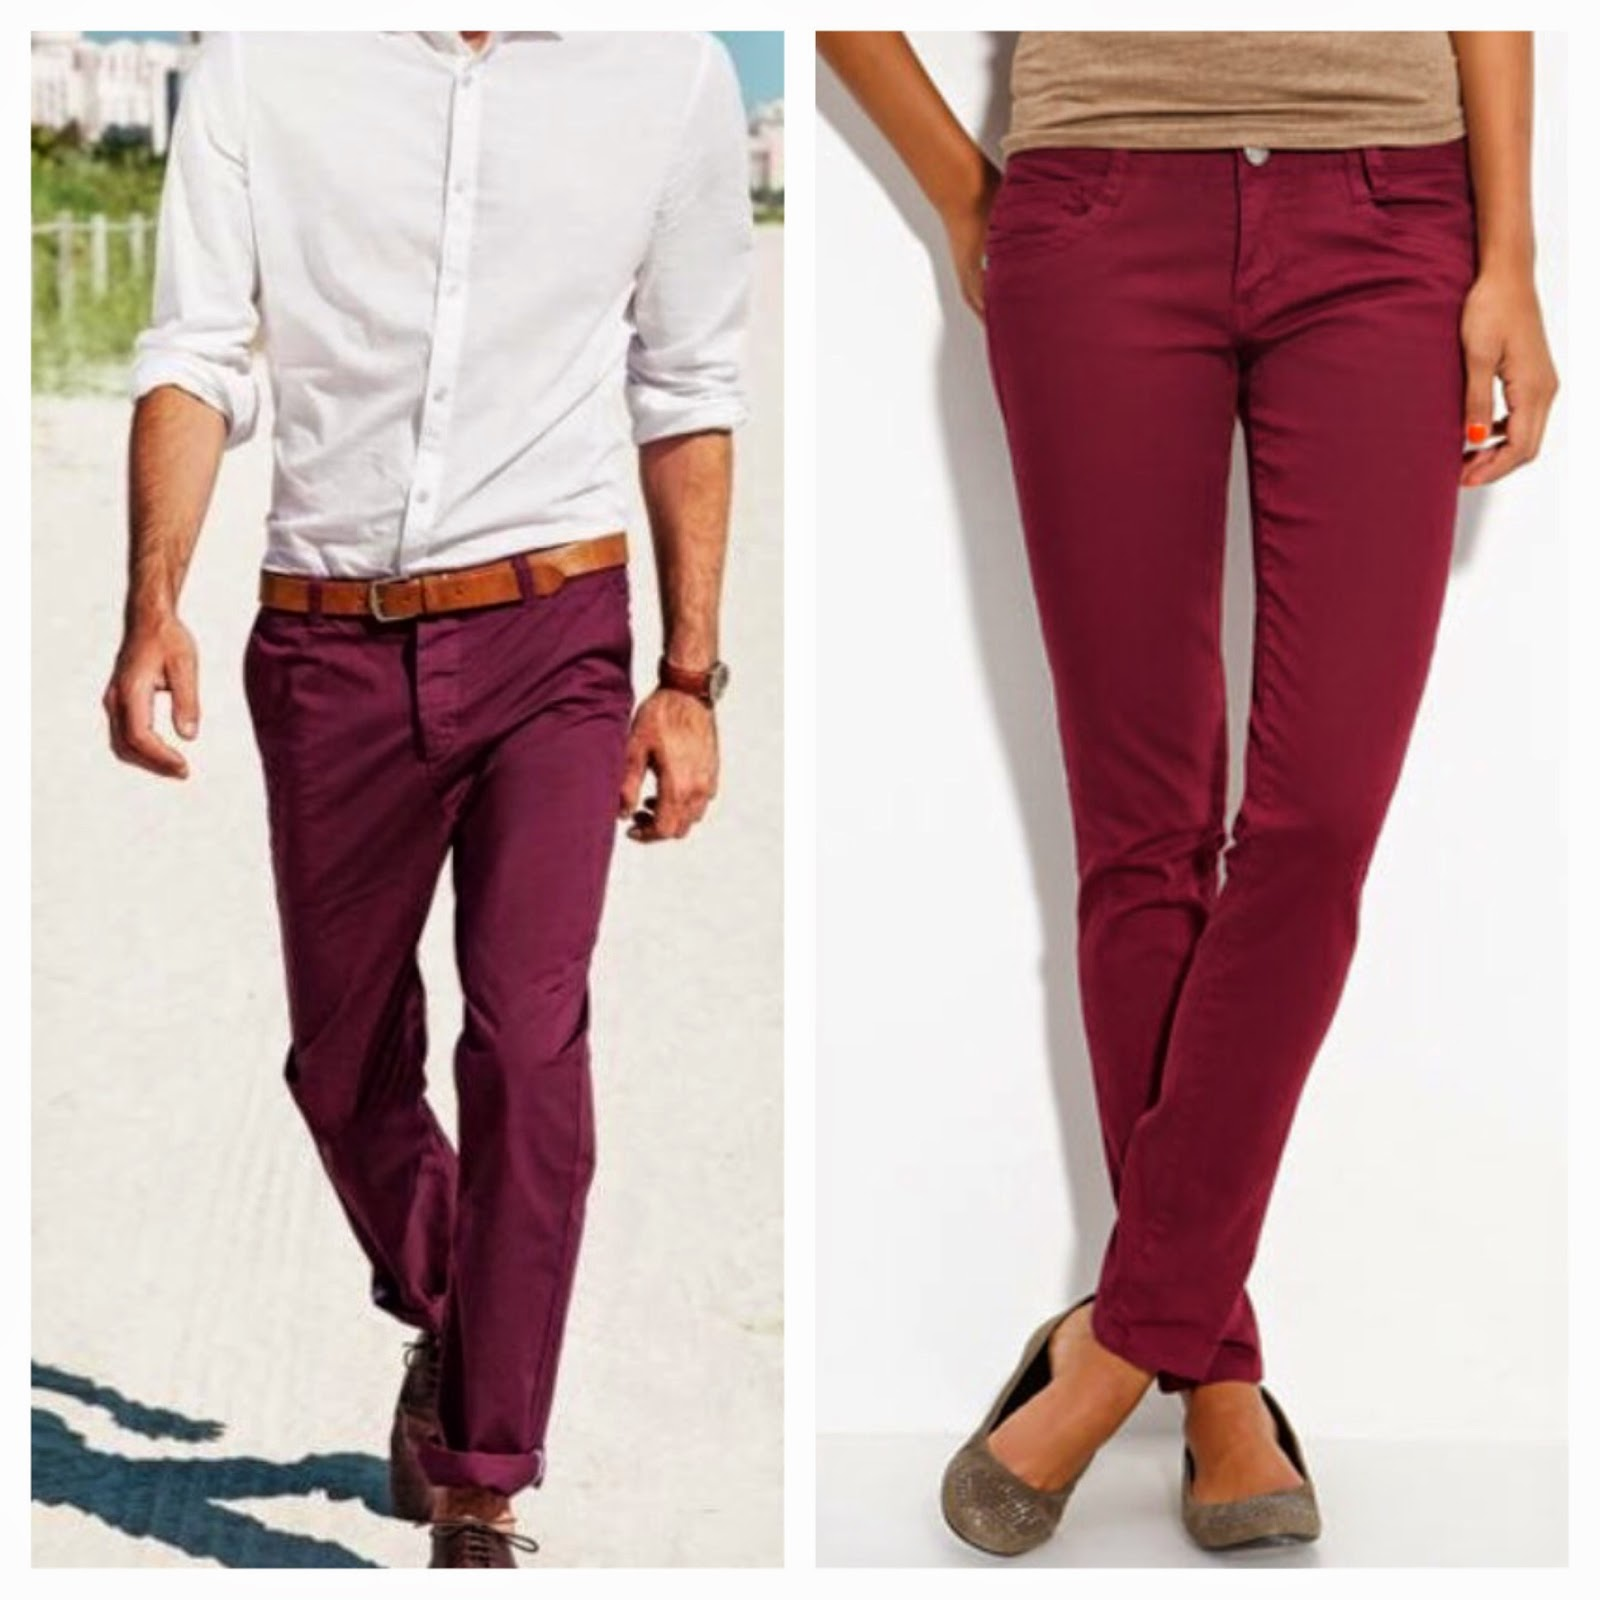 Men and Women Fall Trends